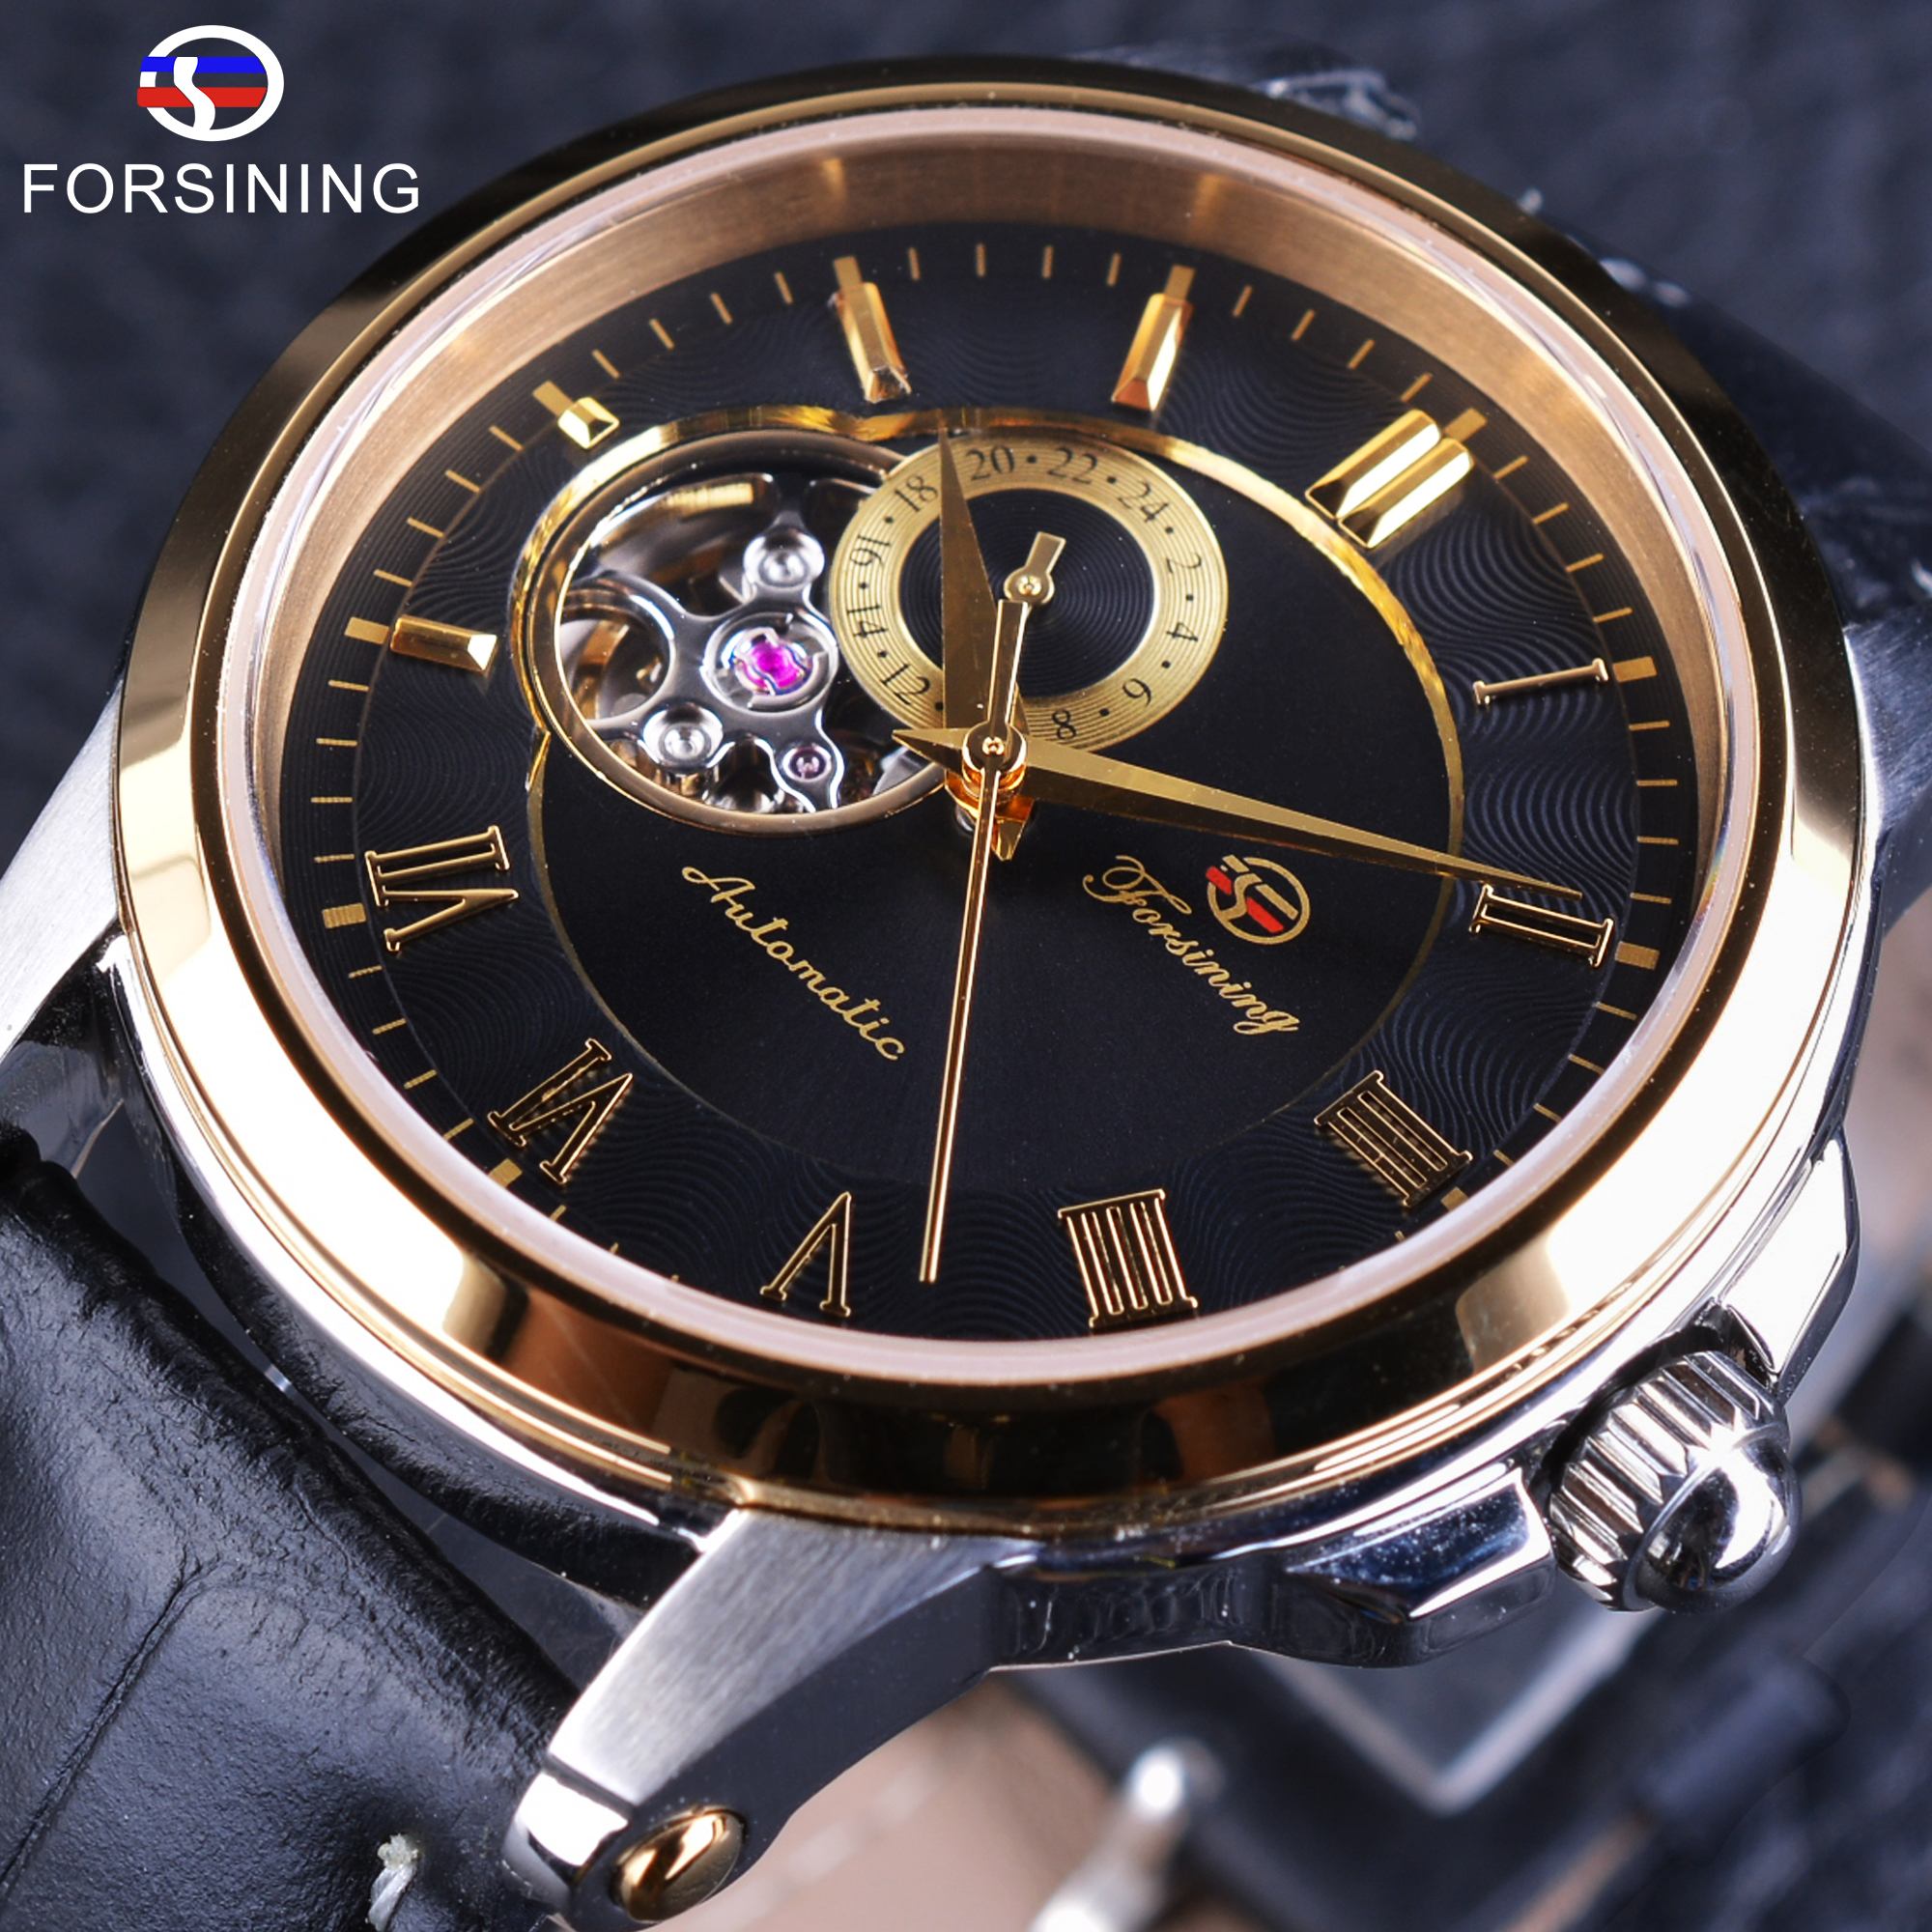 Forsining Japan Mechanical Movement Fashion Open Work Self Winding Mens Skeleton Wrist Watches Top Brand Luxury Automatic Clock forsining 3d skeleton twisting design golden movement inside transparent case mens watches top brand luxury automatic watches